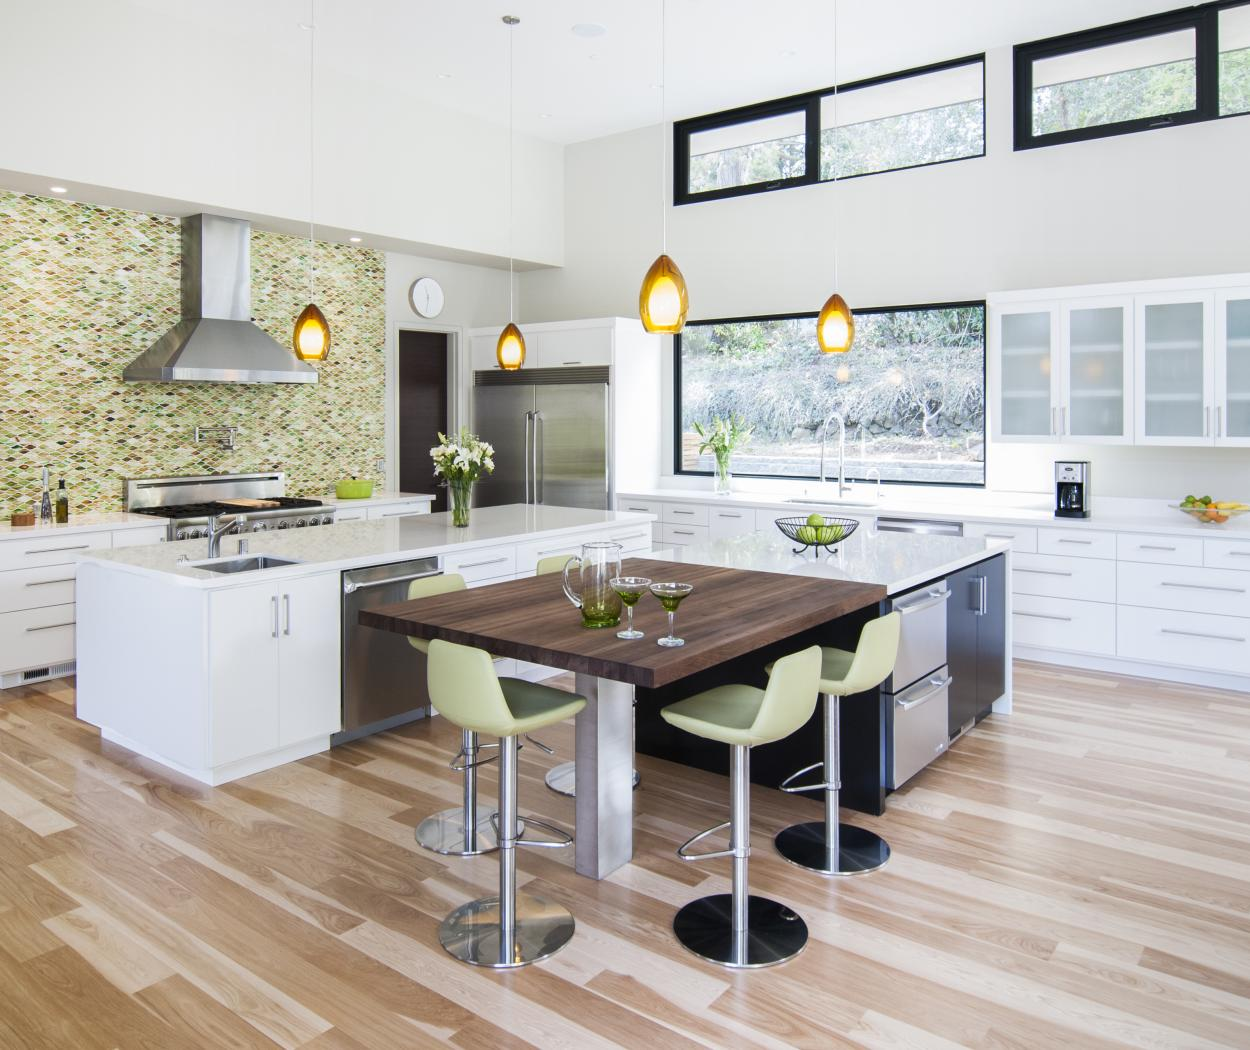 White Contemporary Kitchen with a Beautiful Green Mixed Back Splash, White Counter Tops, Silver Hardware and Stainless Steel Appliances